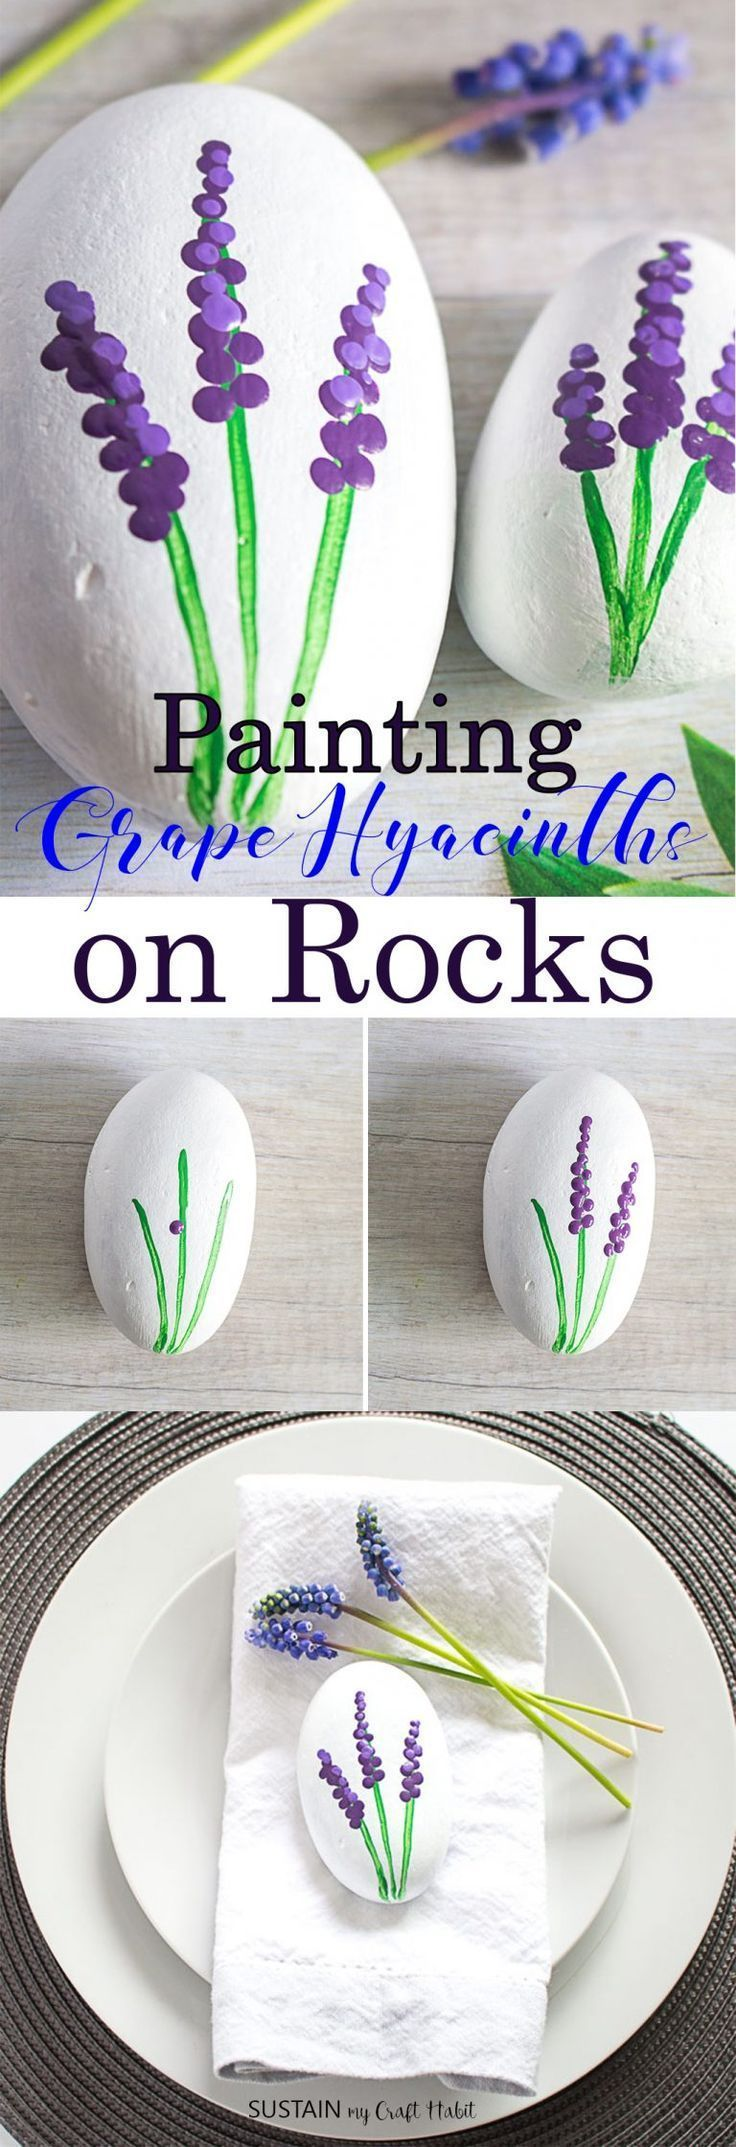 #Rock flowers #painted #painted #rock flowers #painted rock flowers#flowers